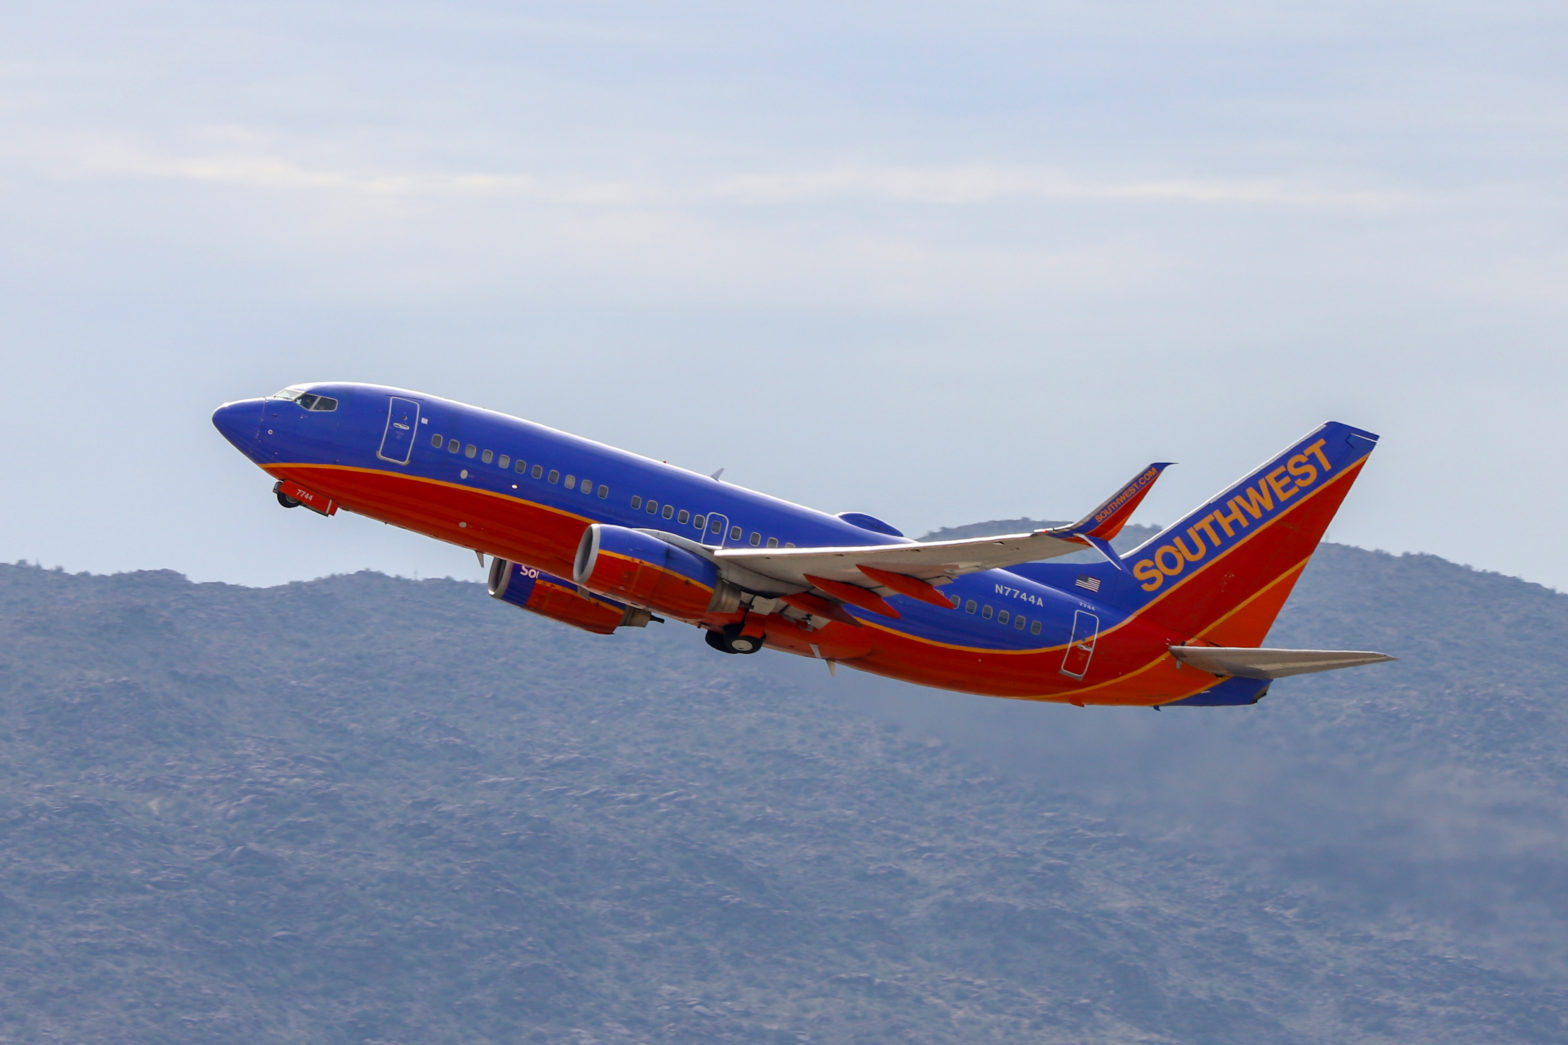 Southwest Airlines - Boeing 737-7BD (N7744A) - Quintin Soloviev